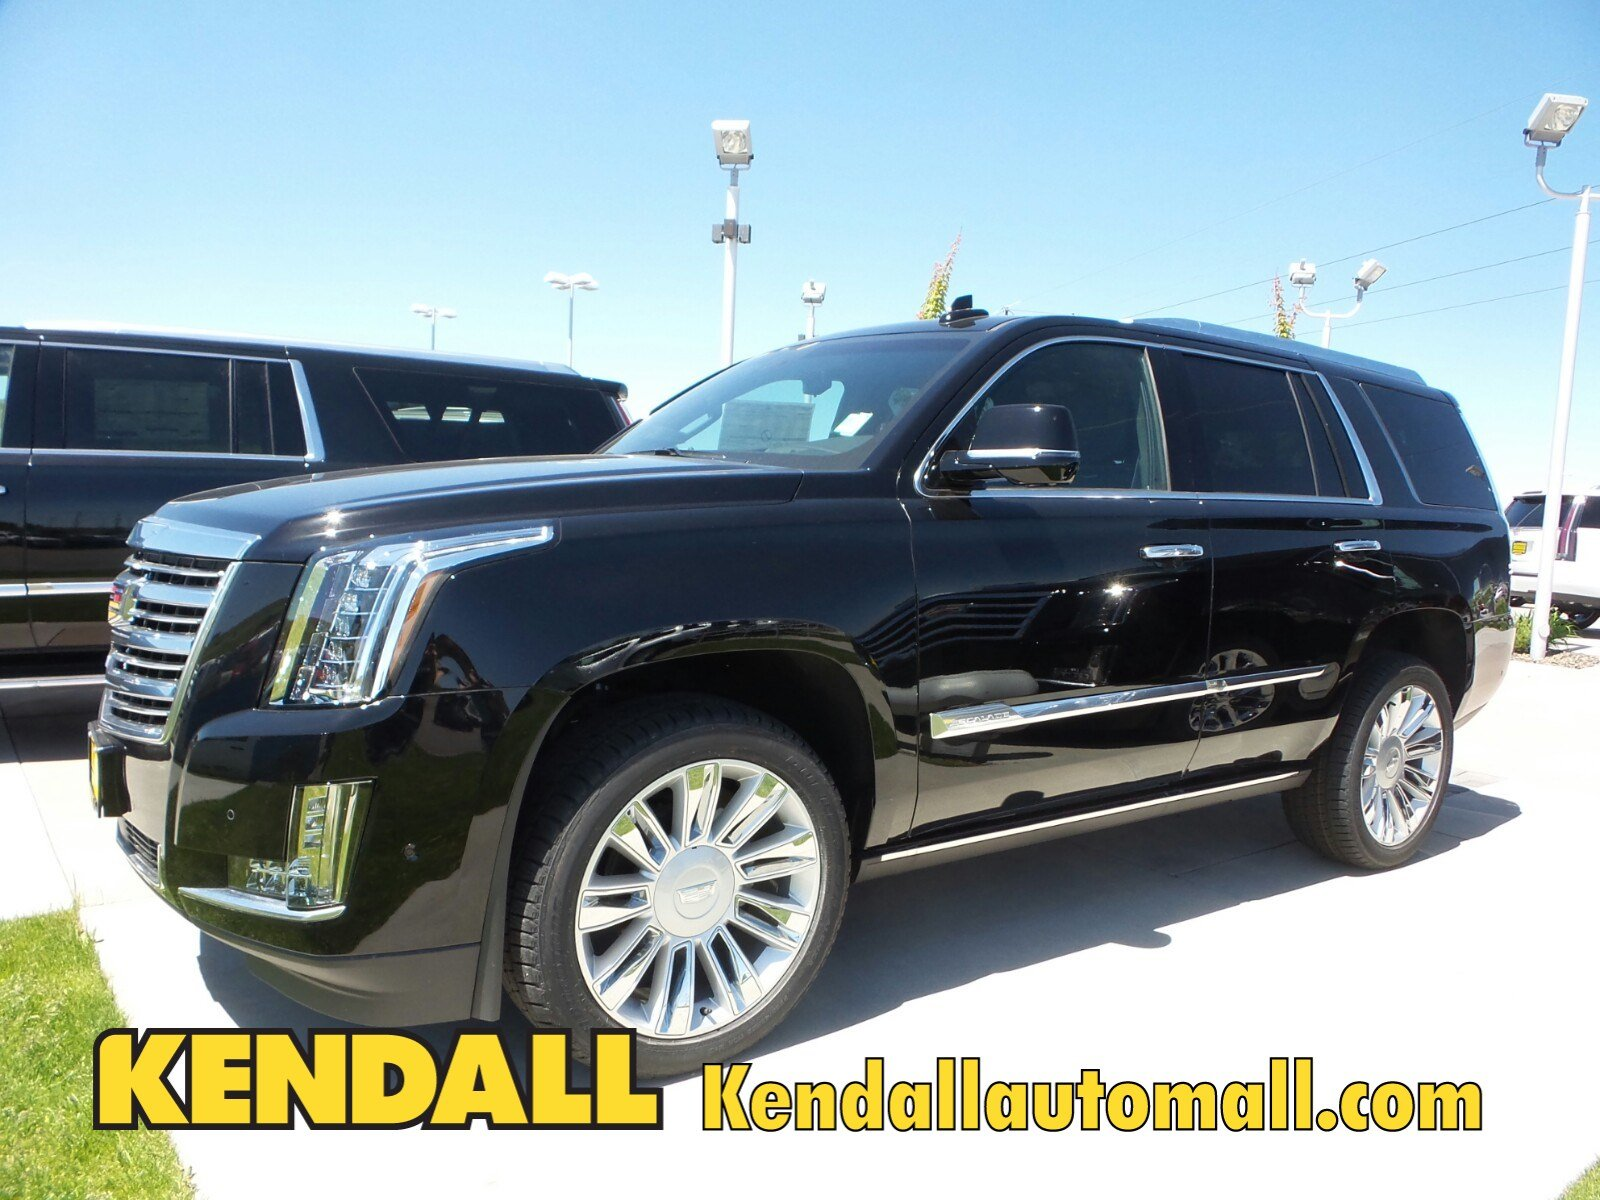 new 2017 cadillac escalade platinum 4wd in nampa 37057 kendall at the idaho center auto mall. Black Bedroom Furniture Sets. Home Design Ideas